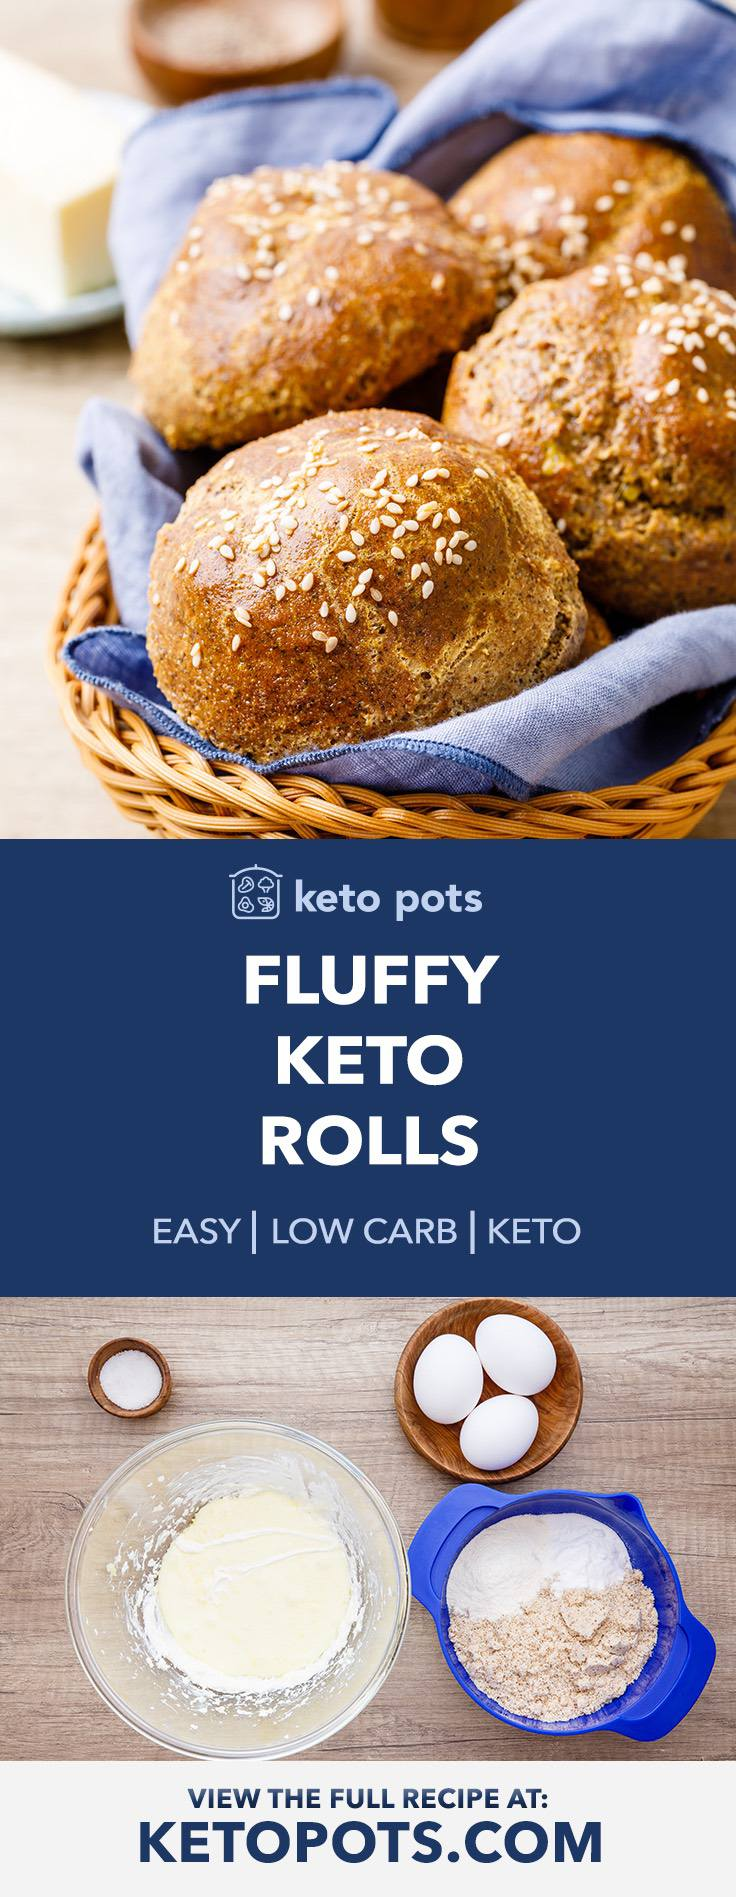 How To Make The Best Fluffy Keto Rolls Try These Keto Pots